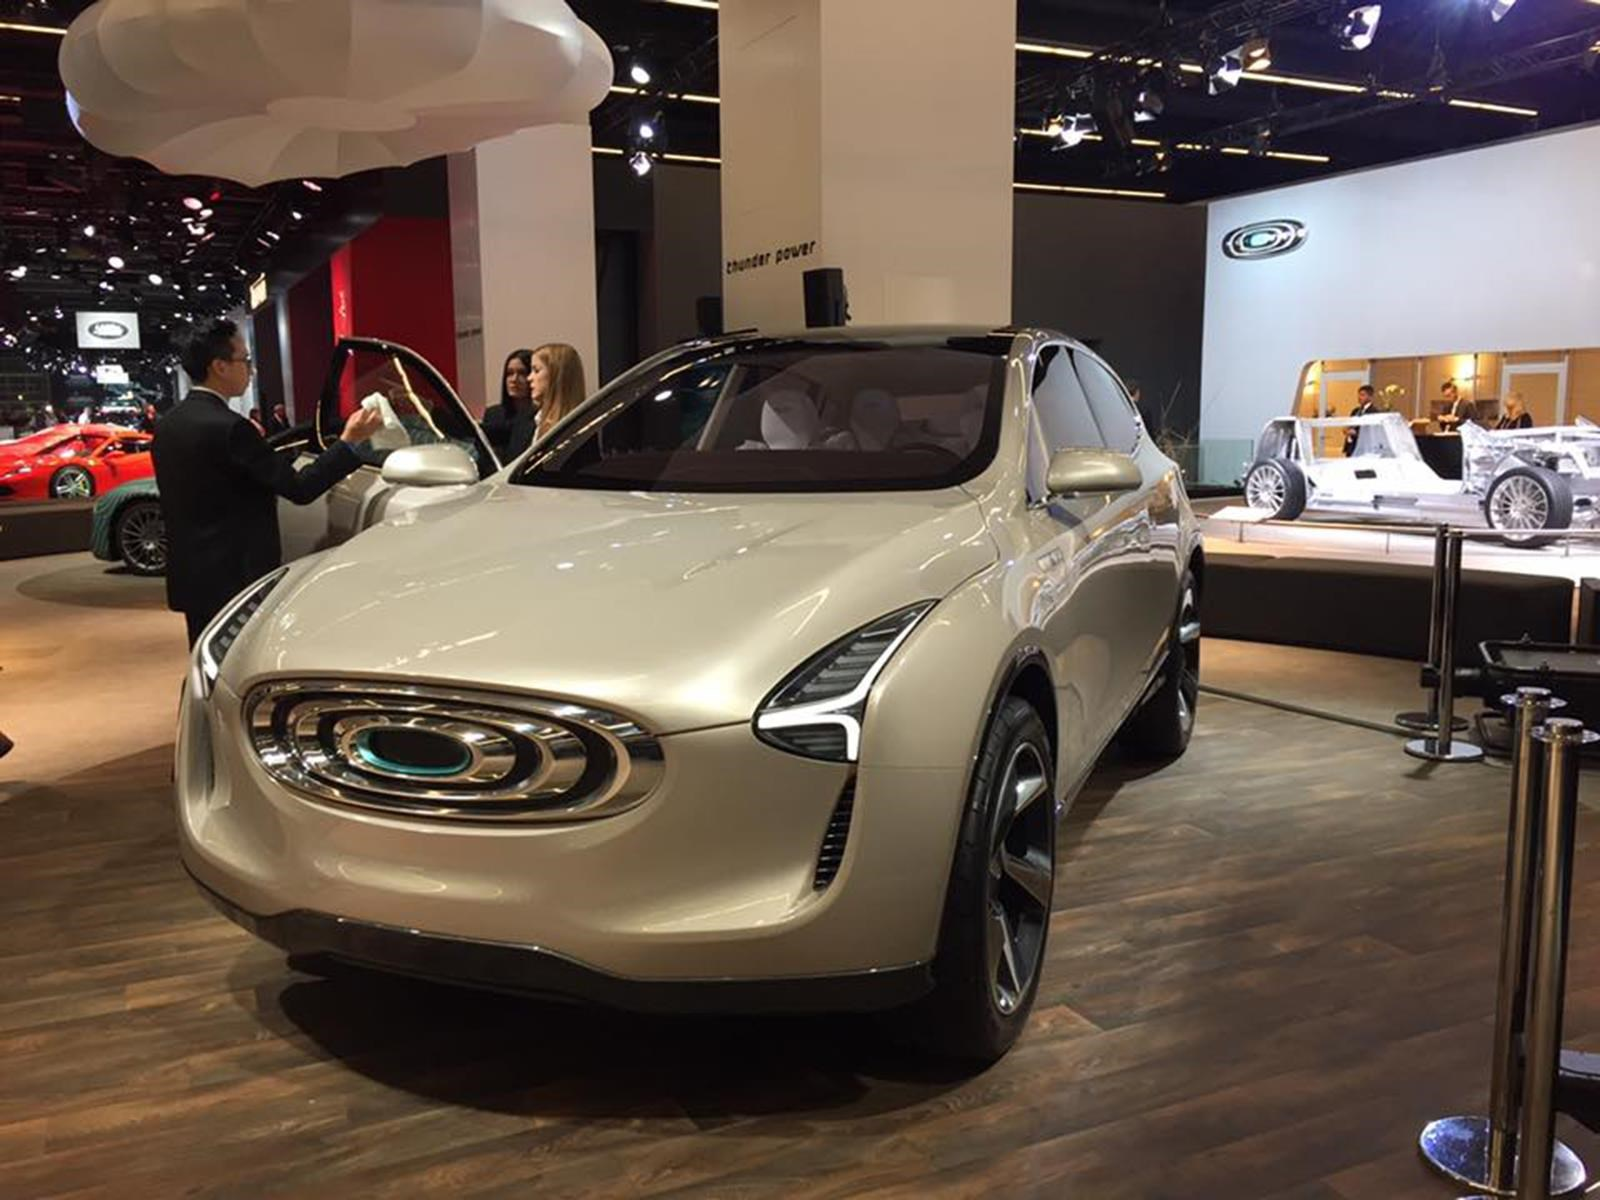 Thunder Power Future Vision Concept, el SUV made in Taiwan